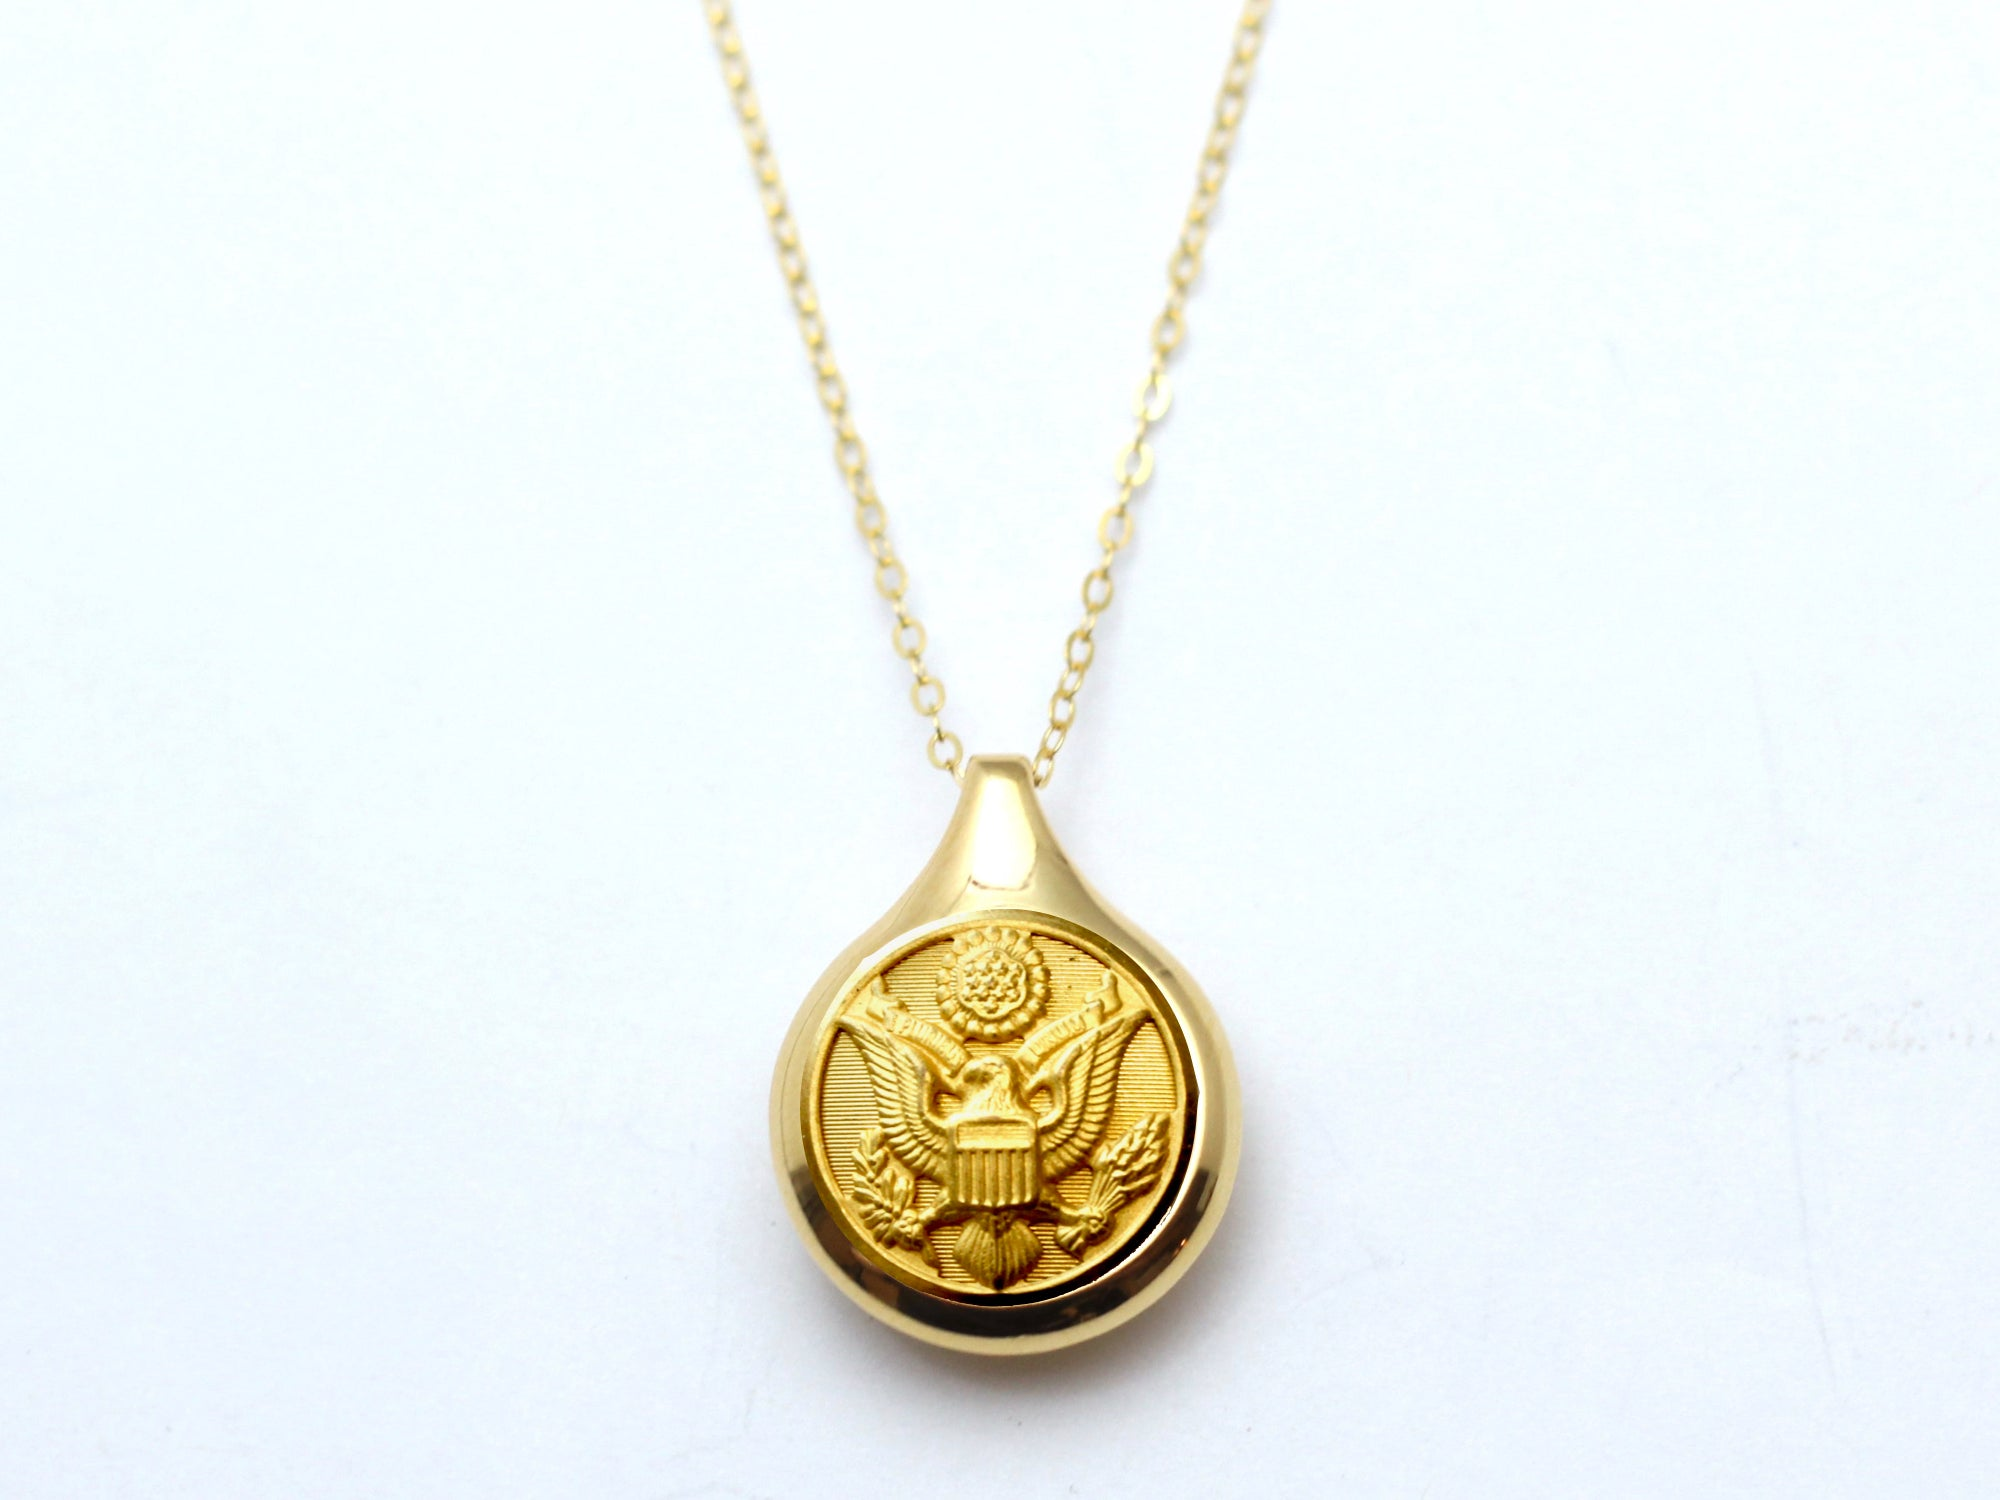 Army Button Sleek Gold Necklace